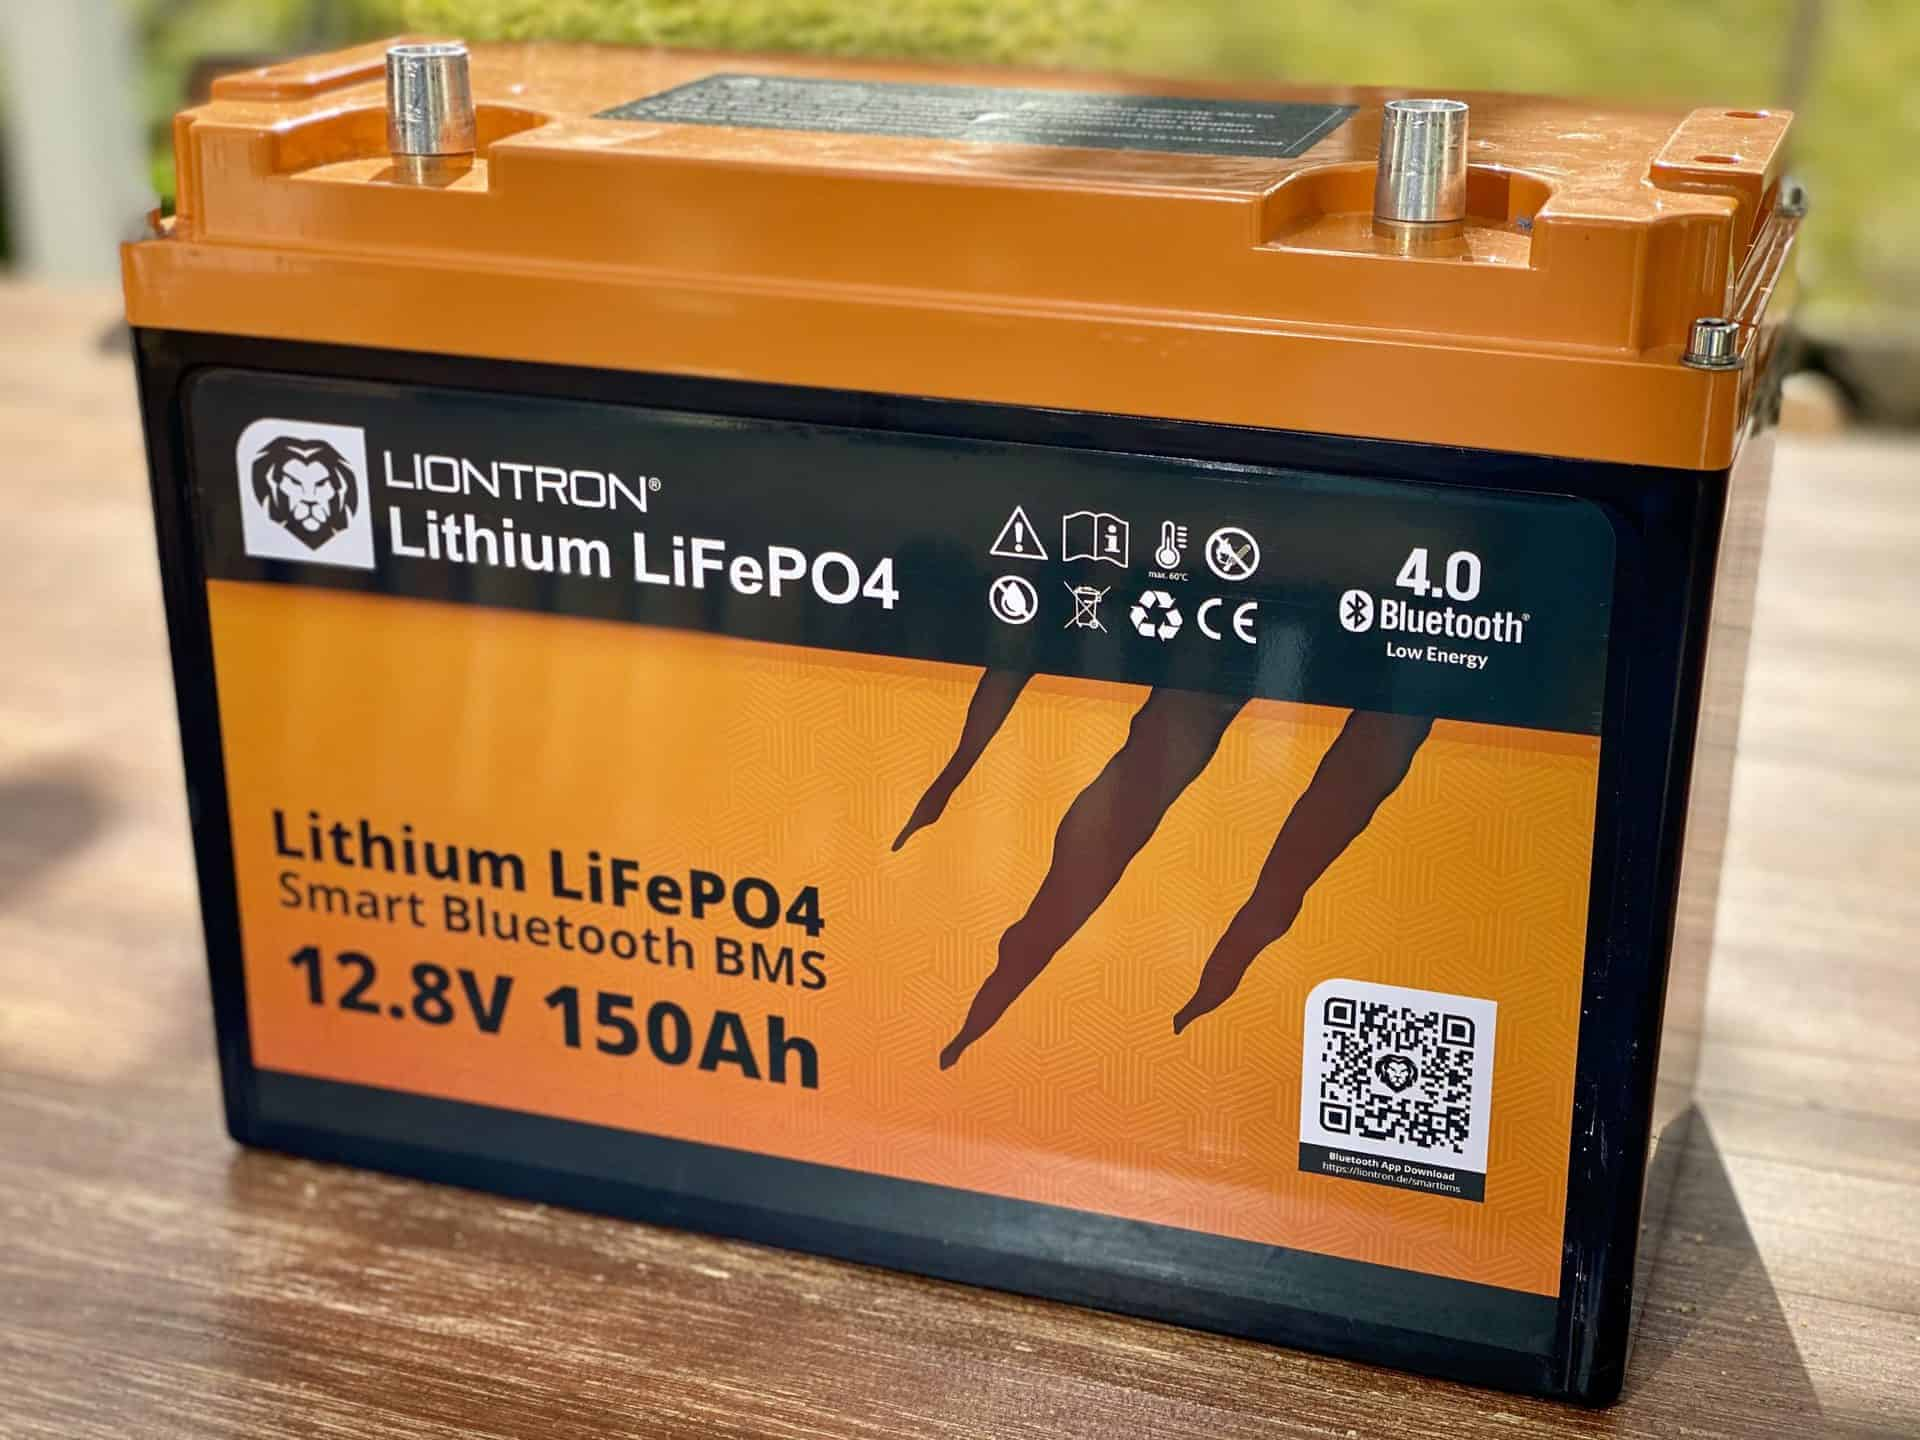 Liontron_Lithium_LiFePO4_Smart_Bluetooh_BMS_128V_150Ah